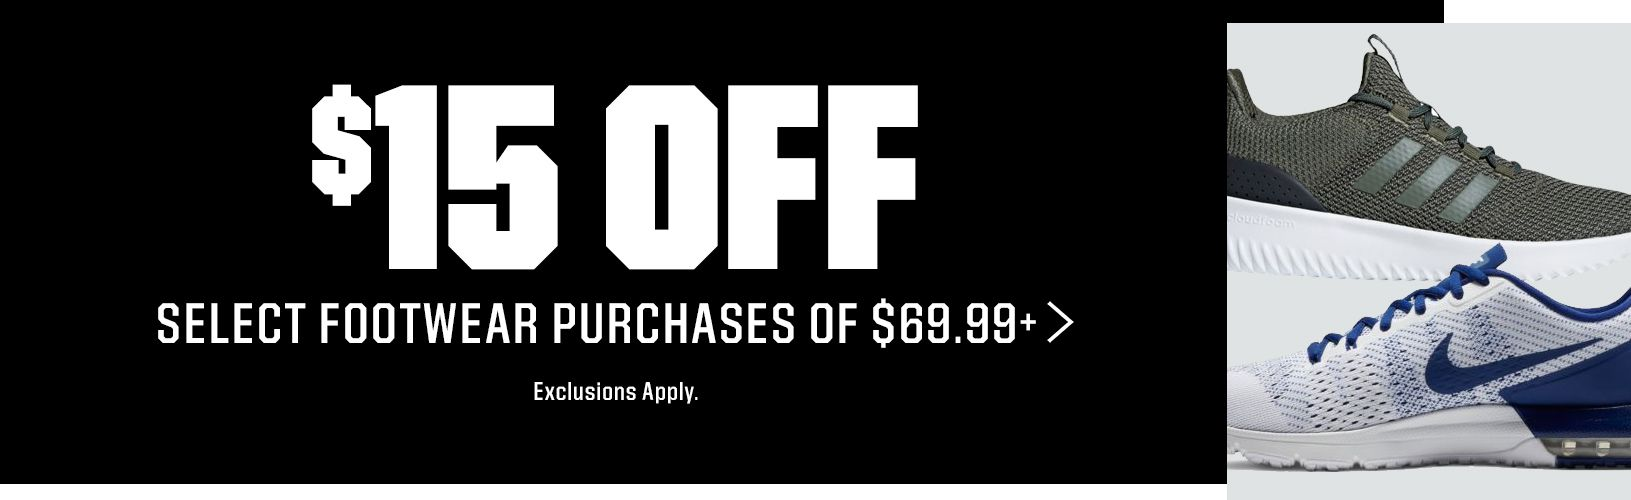 $15 Off Select Footwear Purchases of $69.99+ > Exclusions Apply.